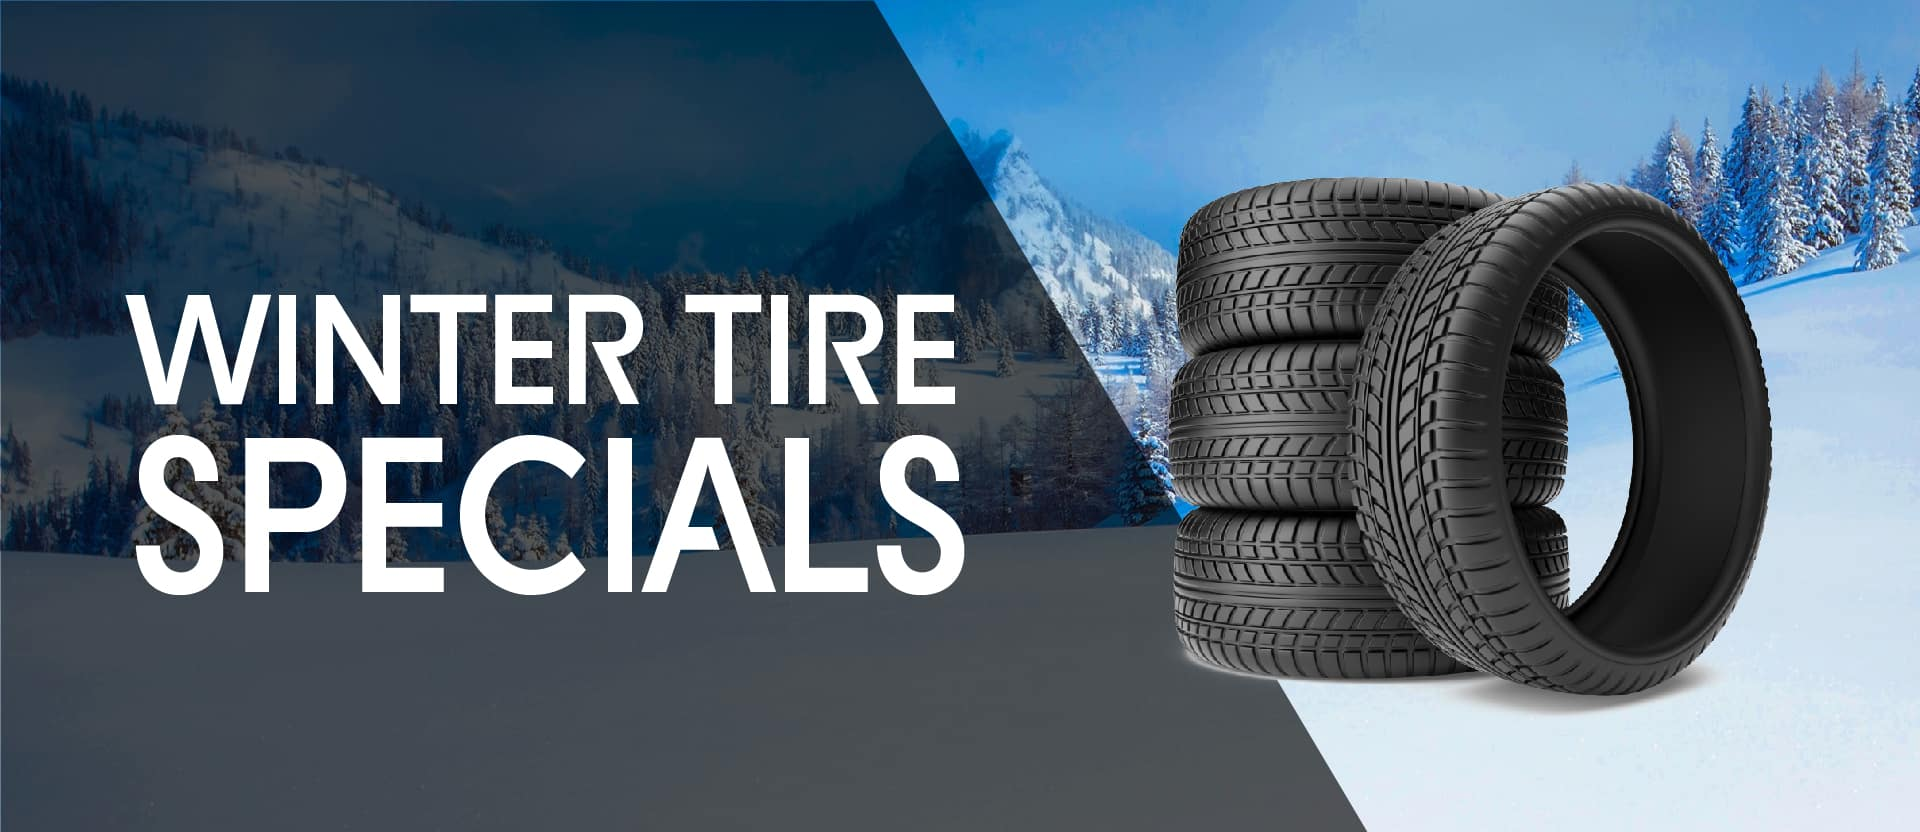 Winter Tire Specials Banner